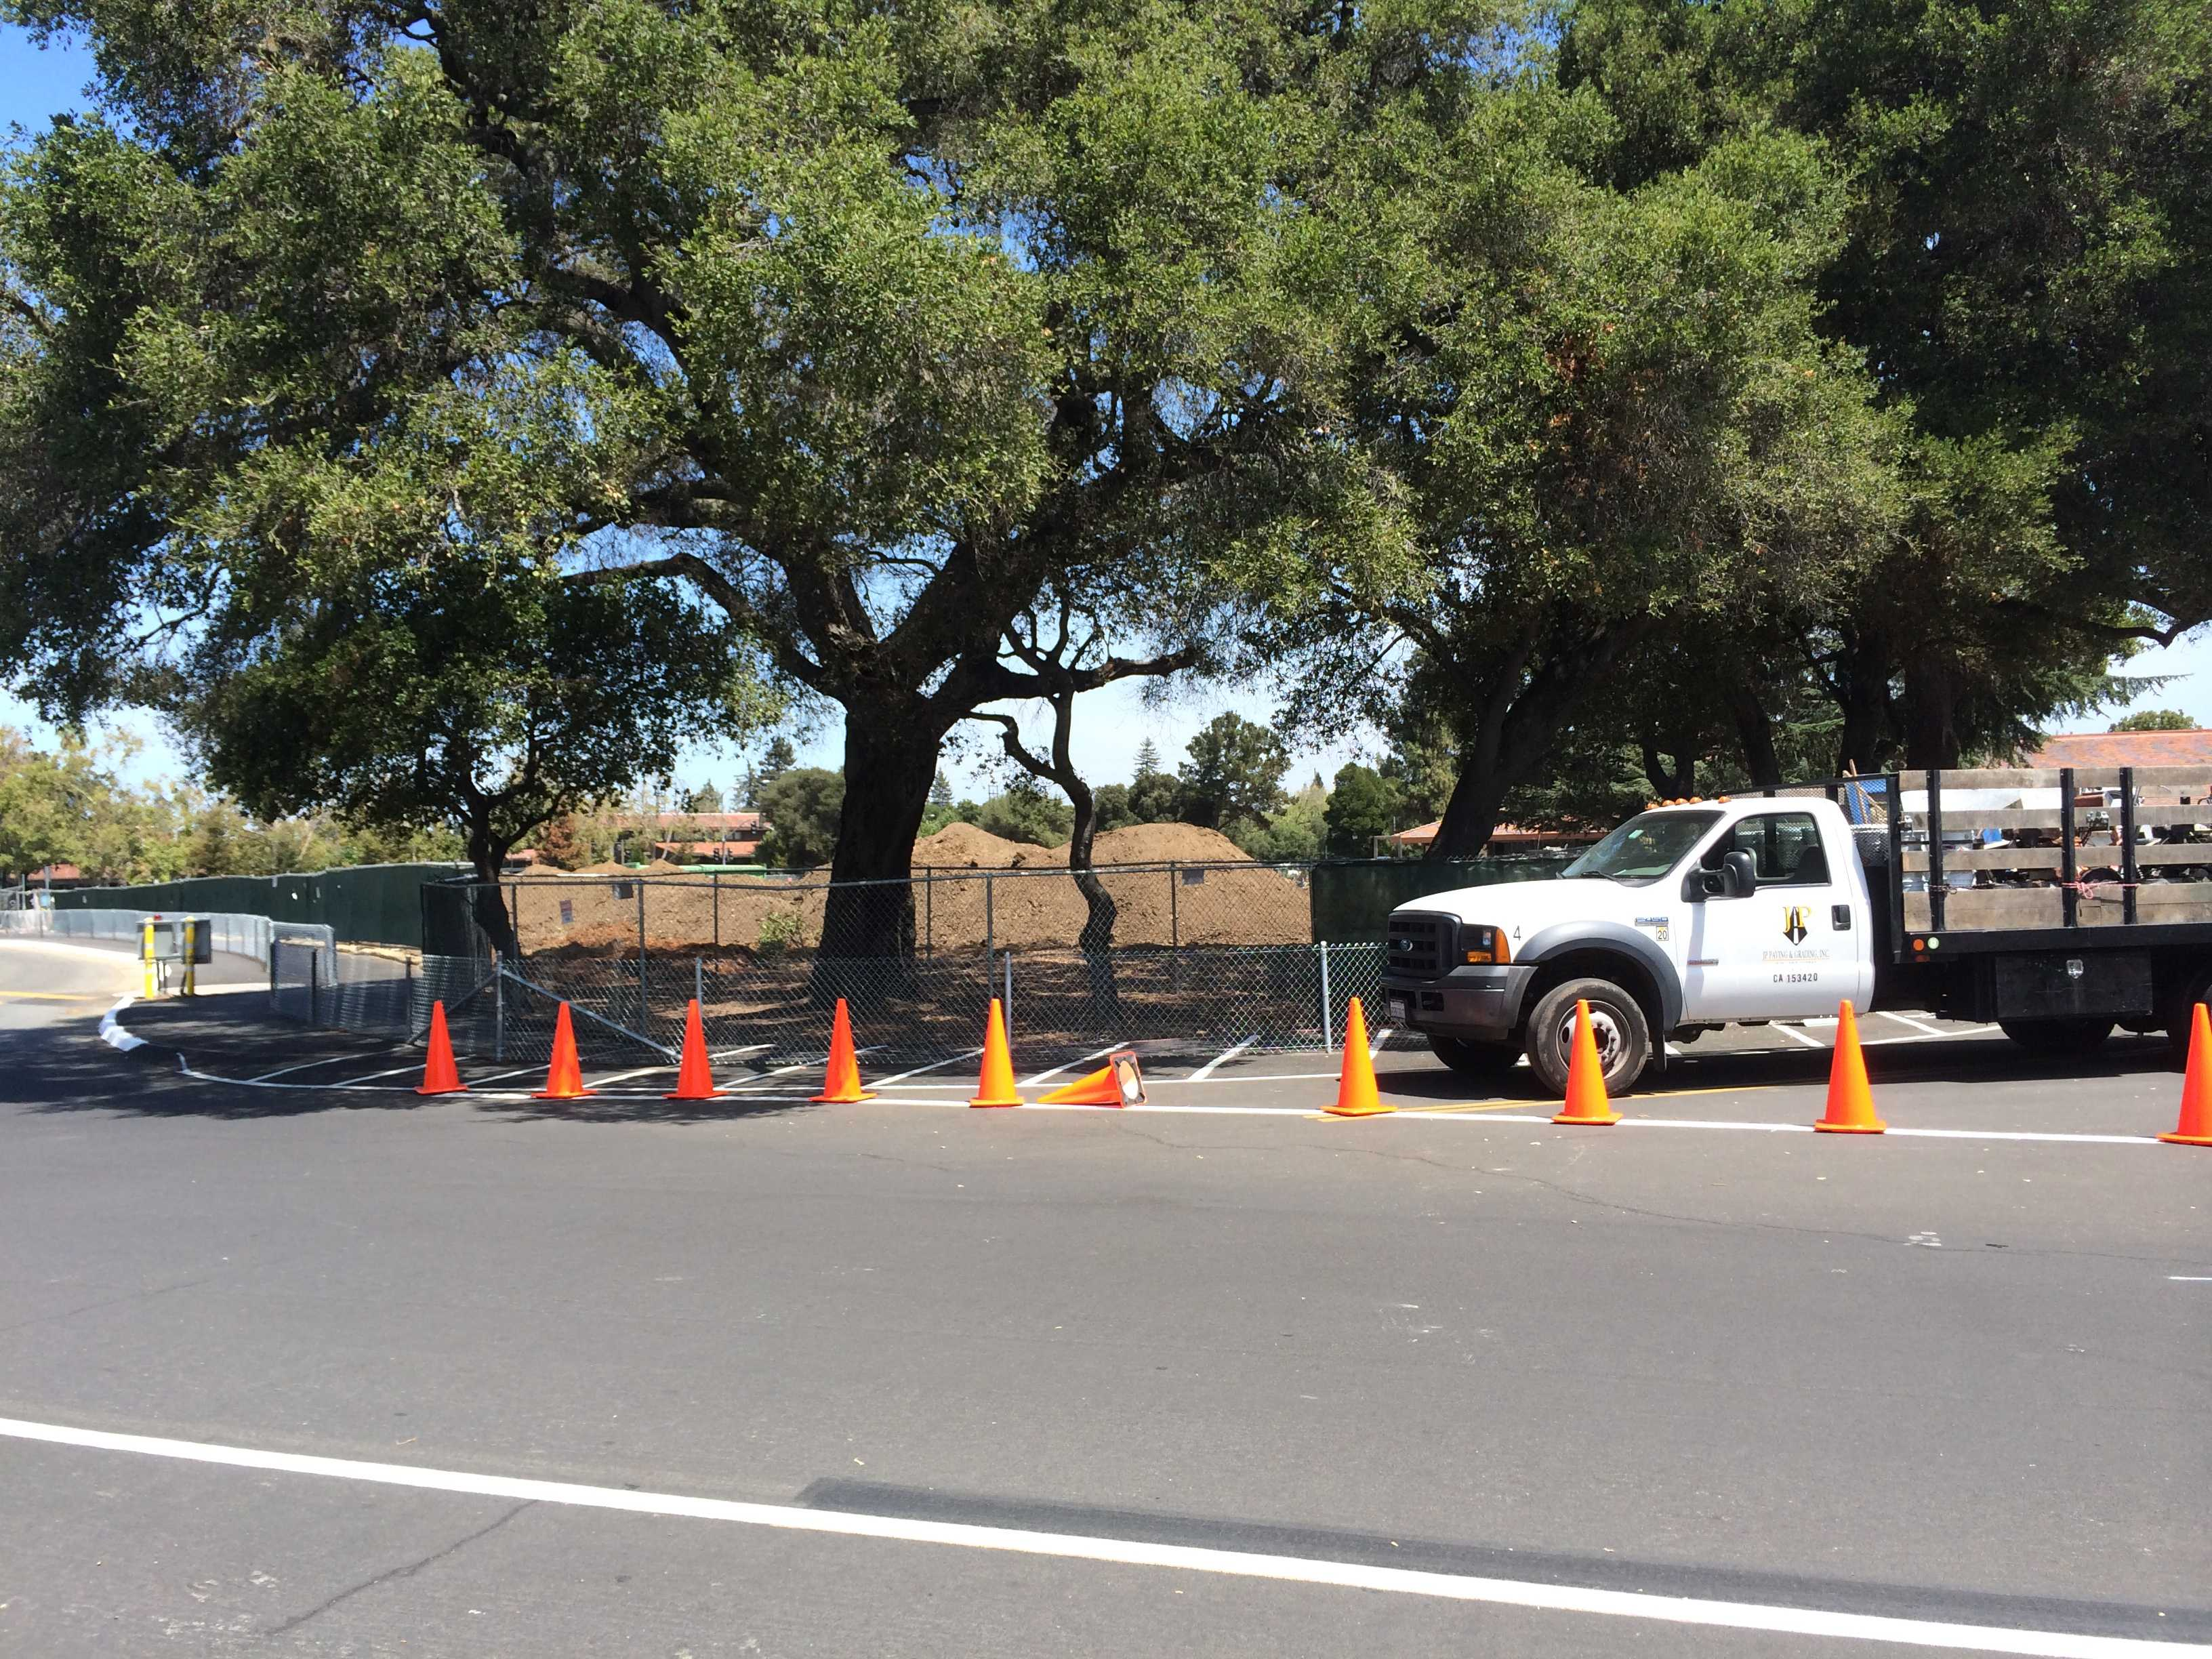 Construction of the new building has taken over part of the previous Embarcadero lot. Photo by Maddy Jones.